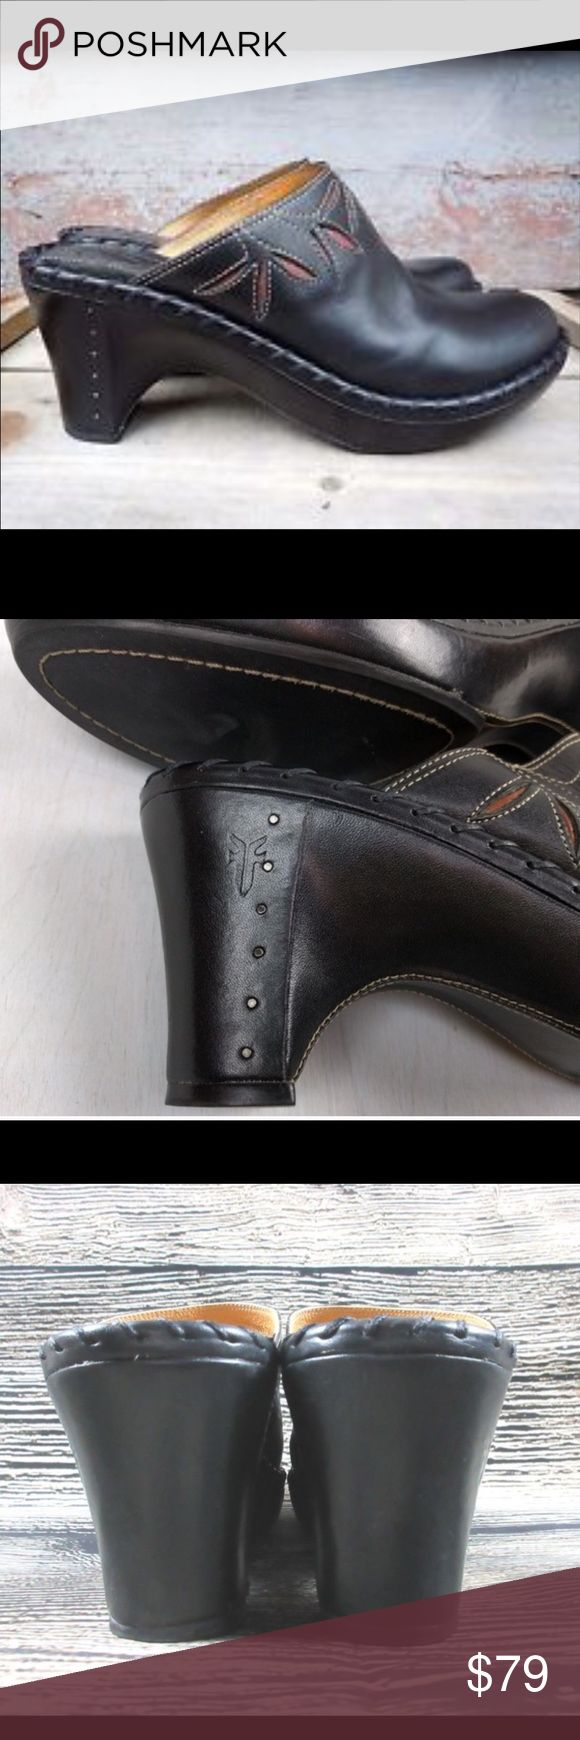 FRYE LEATHER CLOGS Black leather mule clogs with flower cutouts. Super cute and very comfy! In excellent condition! Frye Shoes Mules & Clogs